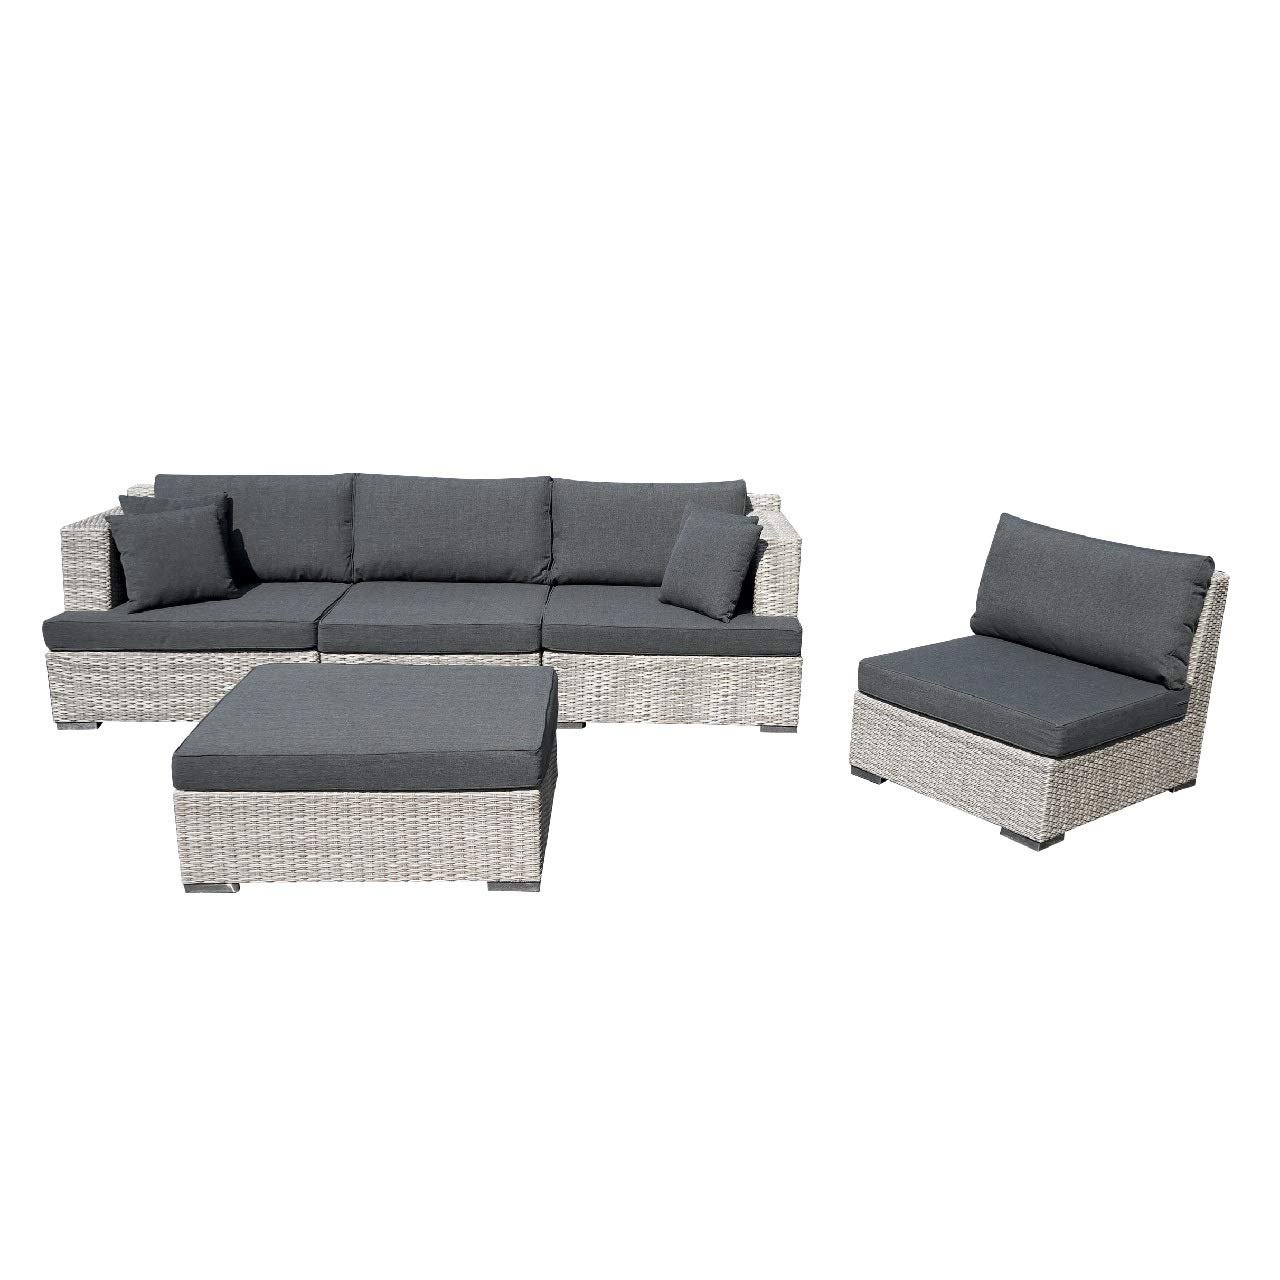 Terrific Kimco 5Pc Set York Module Sofa Patio Furniture Set Home Interior And Landscaping Mentranervesignezvosmurscom